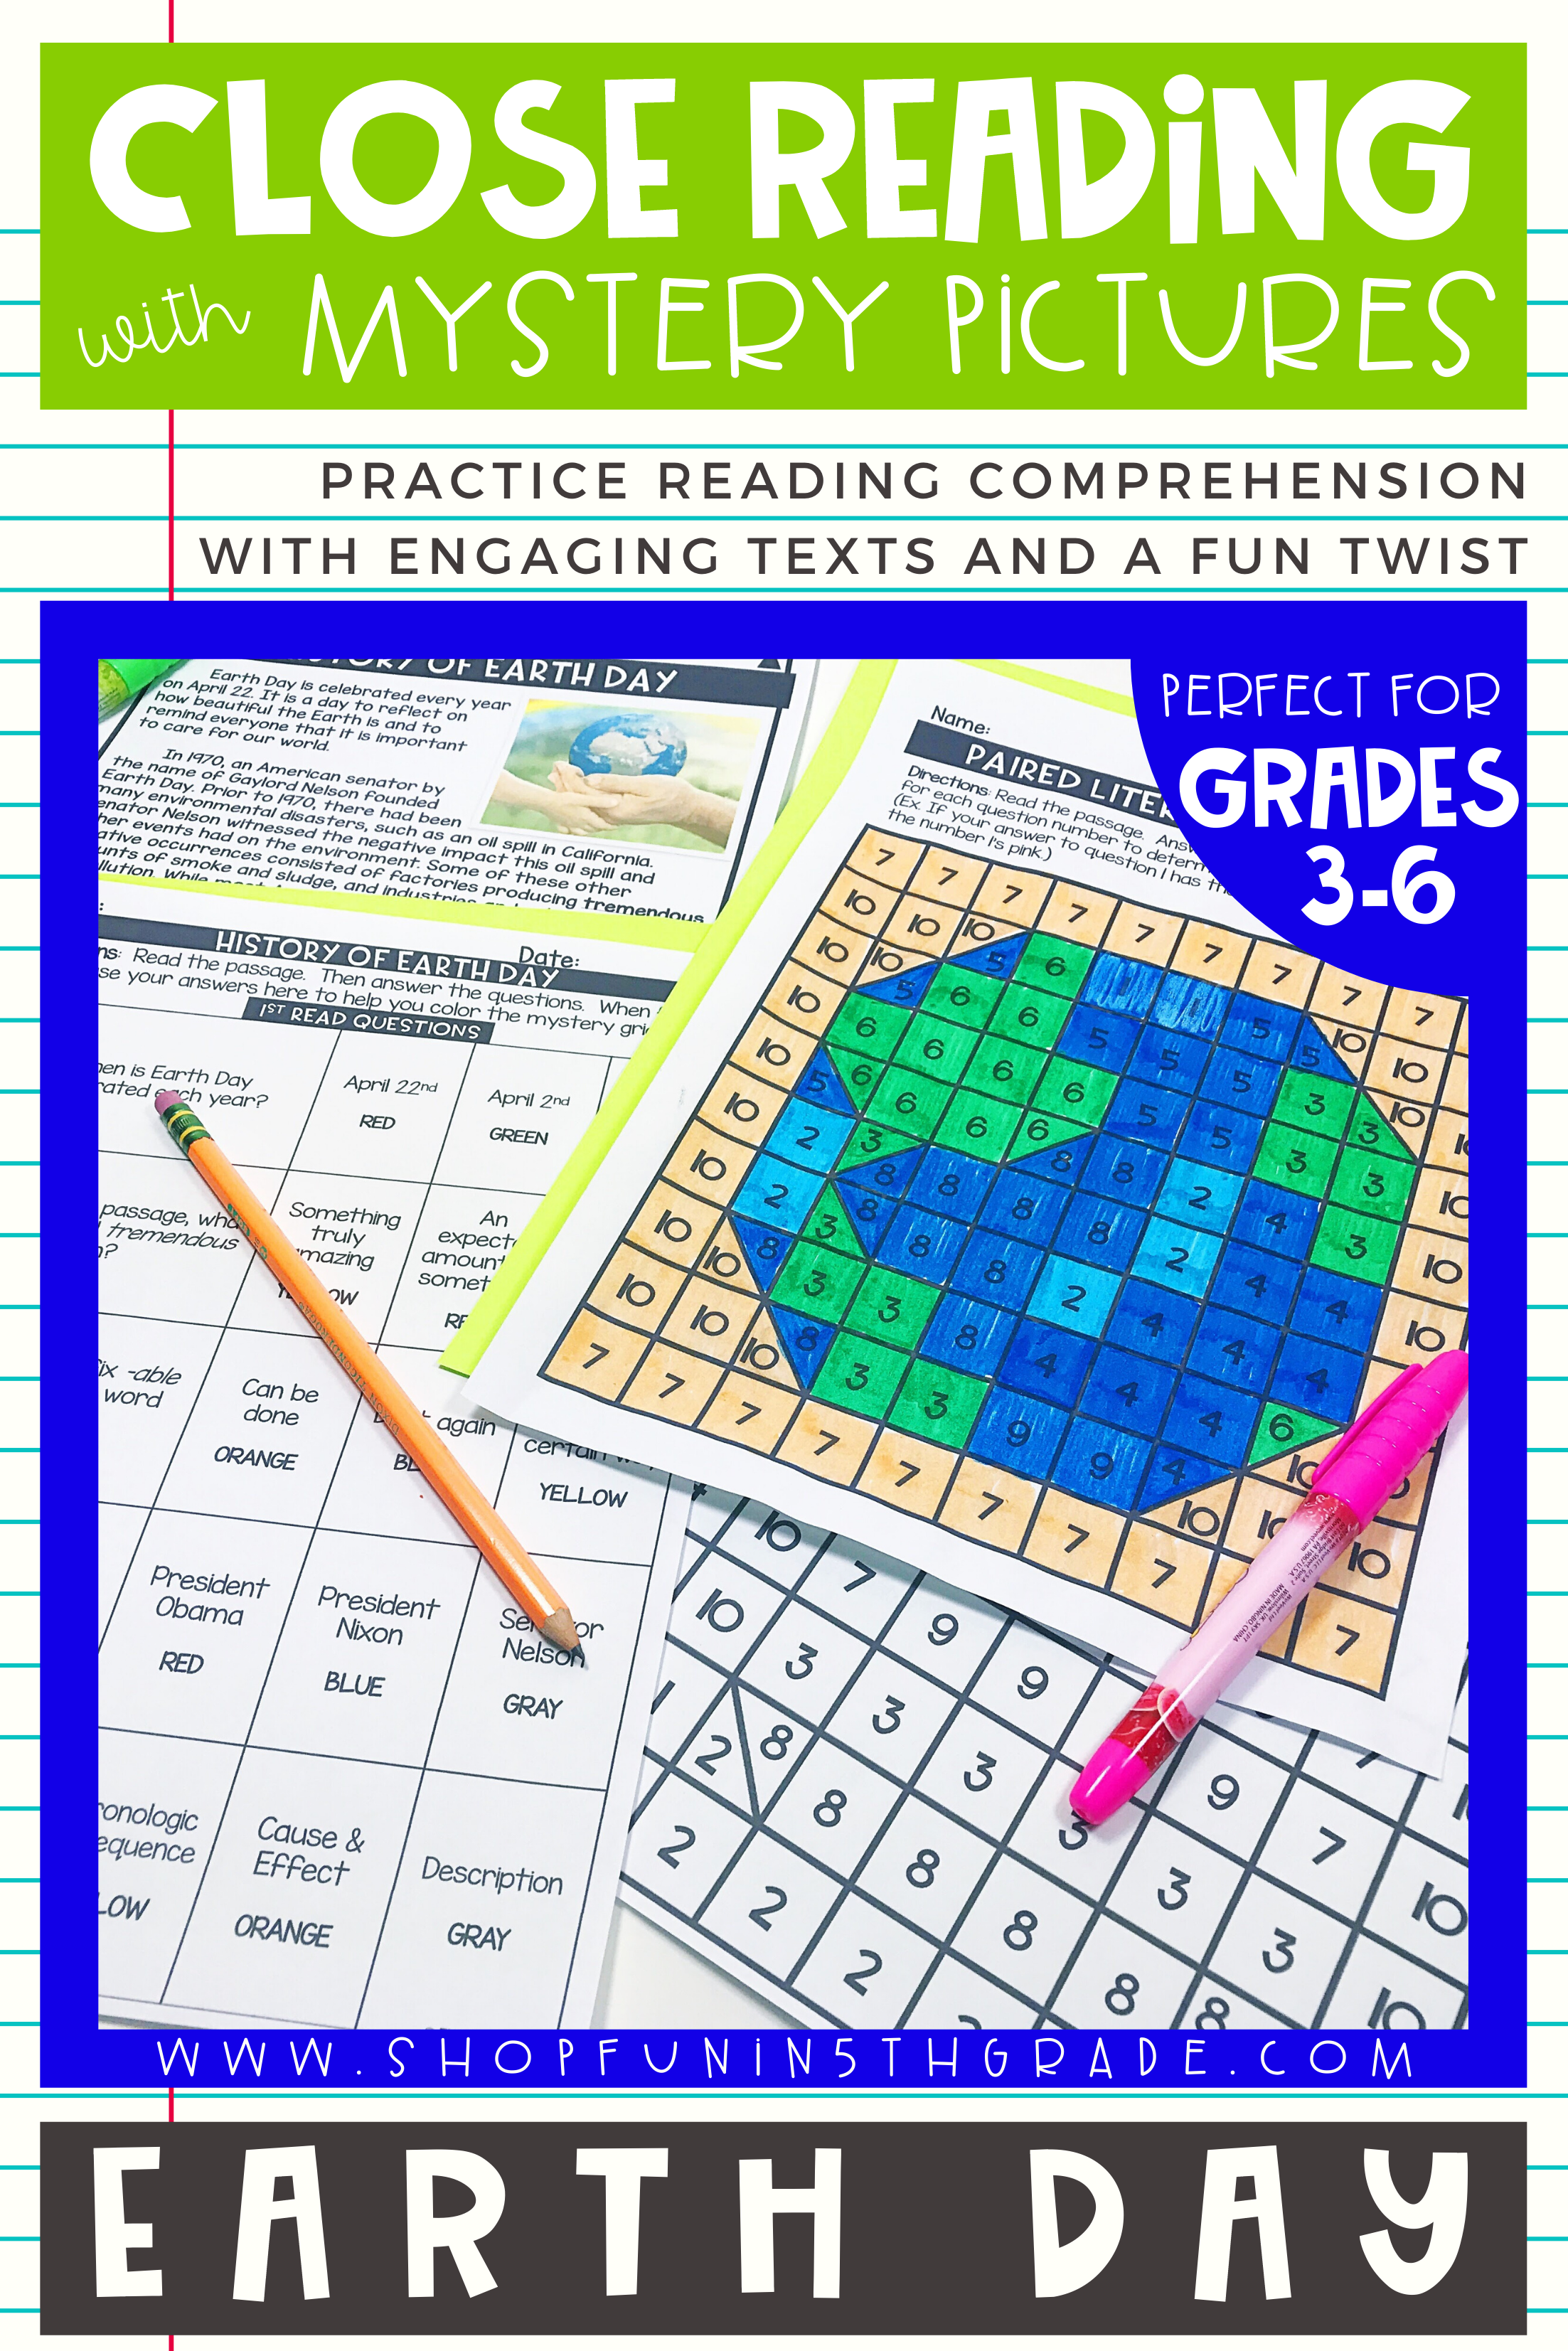 Earth Day Close Reading Comprehension